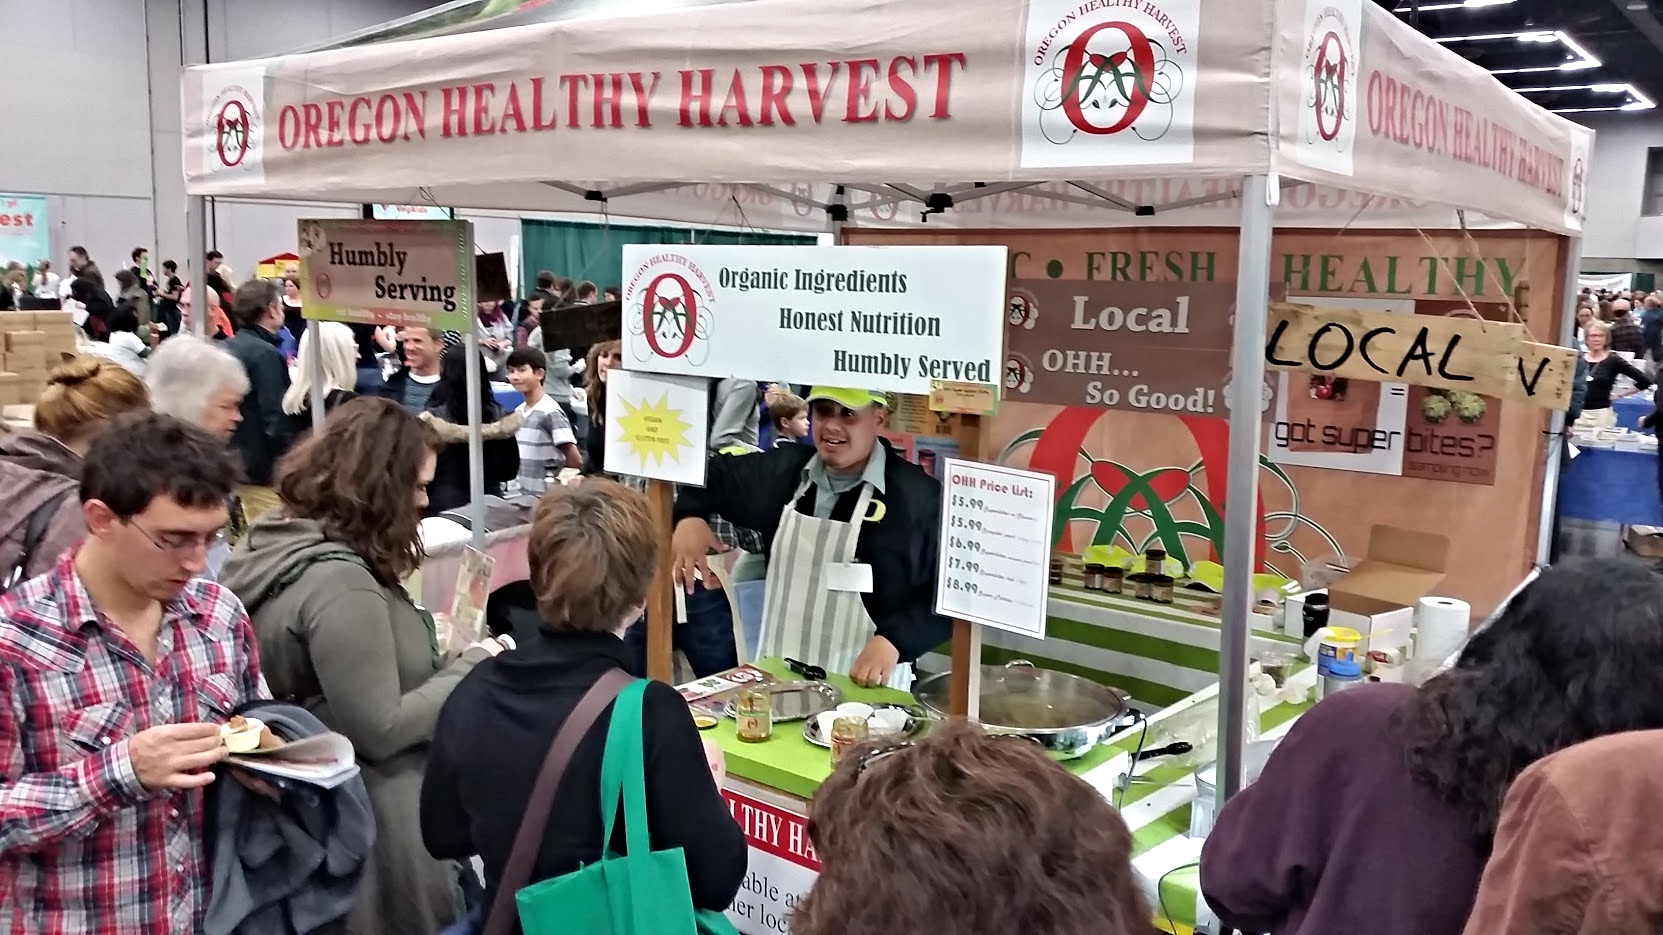 humbly serving oregon healthy harvest to the amazing folks at portland's vegfest!